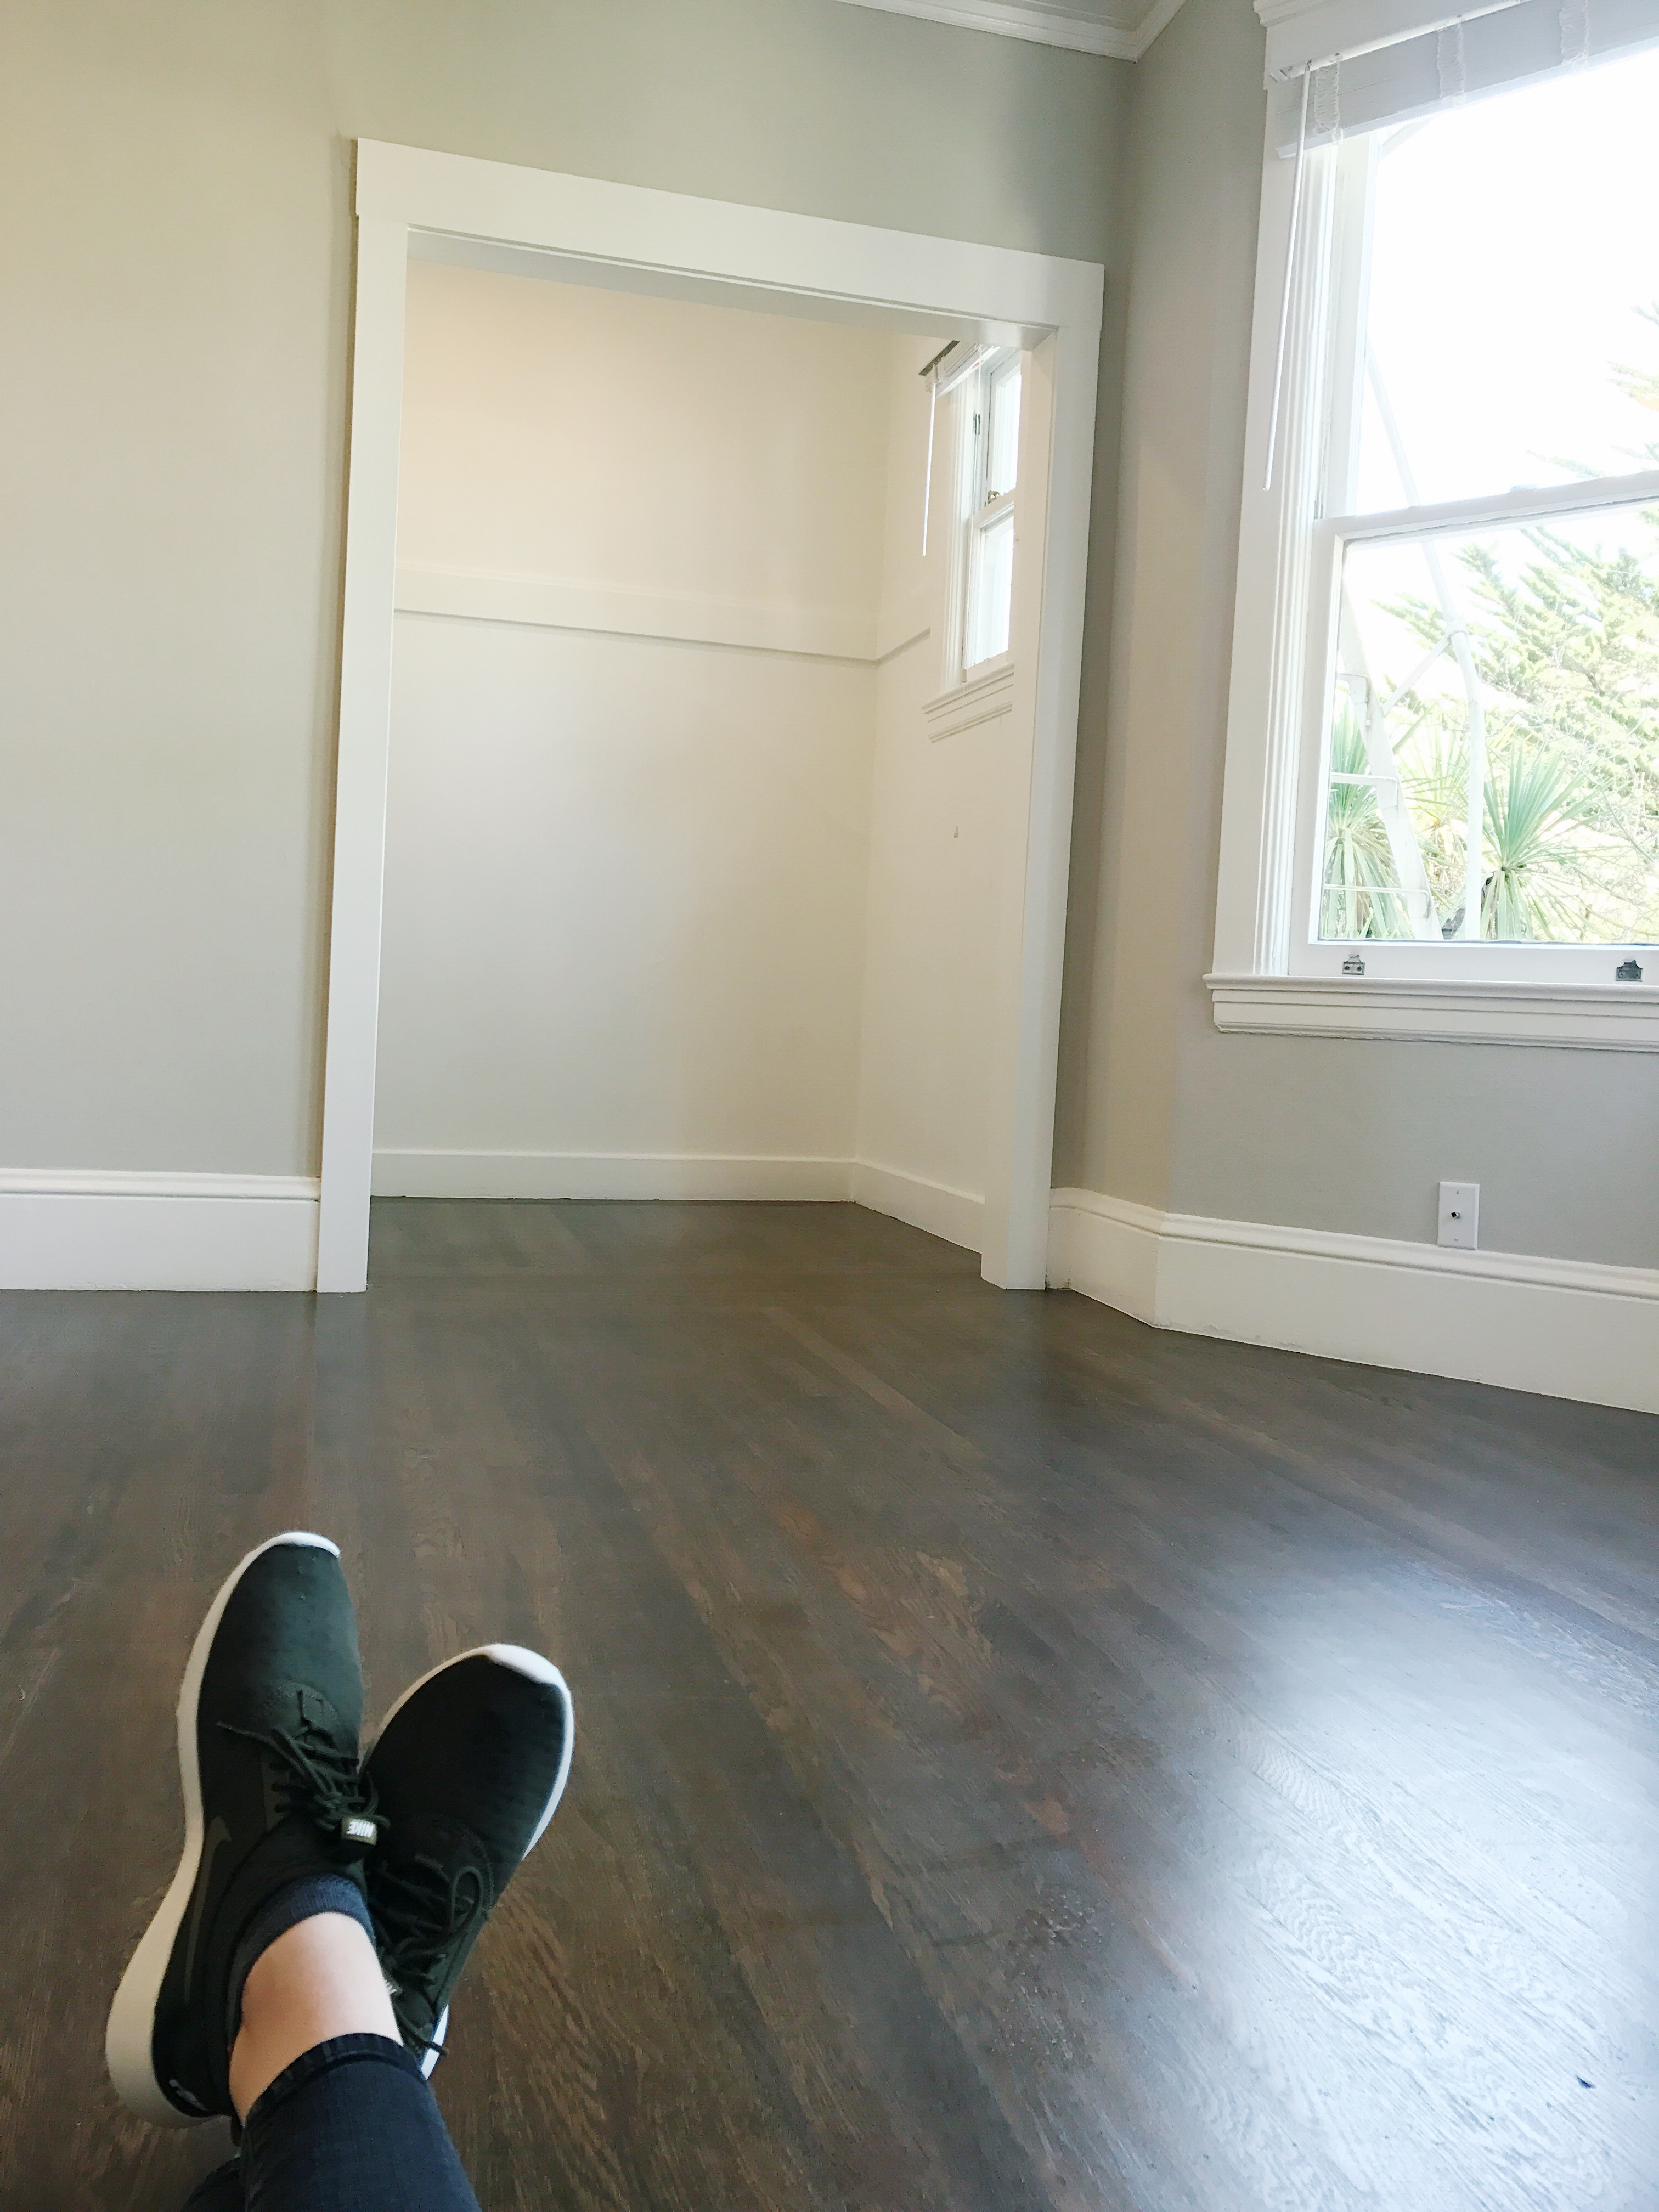 New San Francisco Apartment!